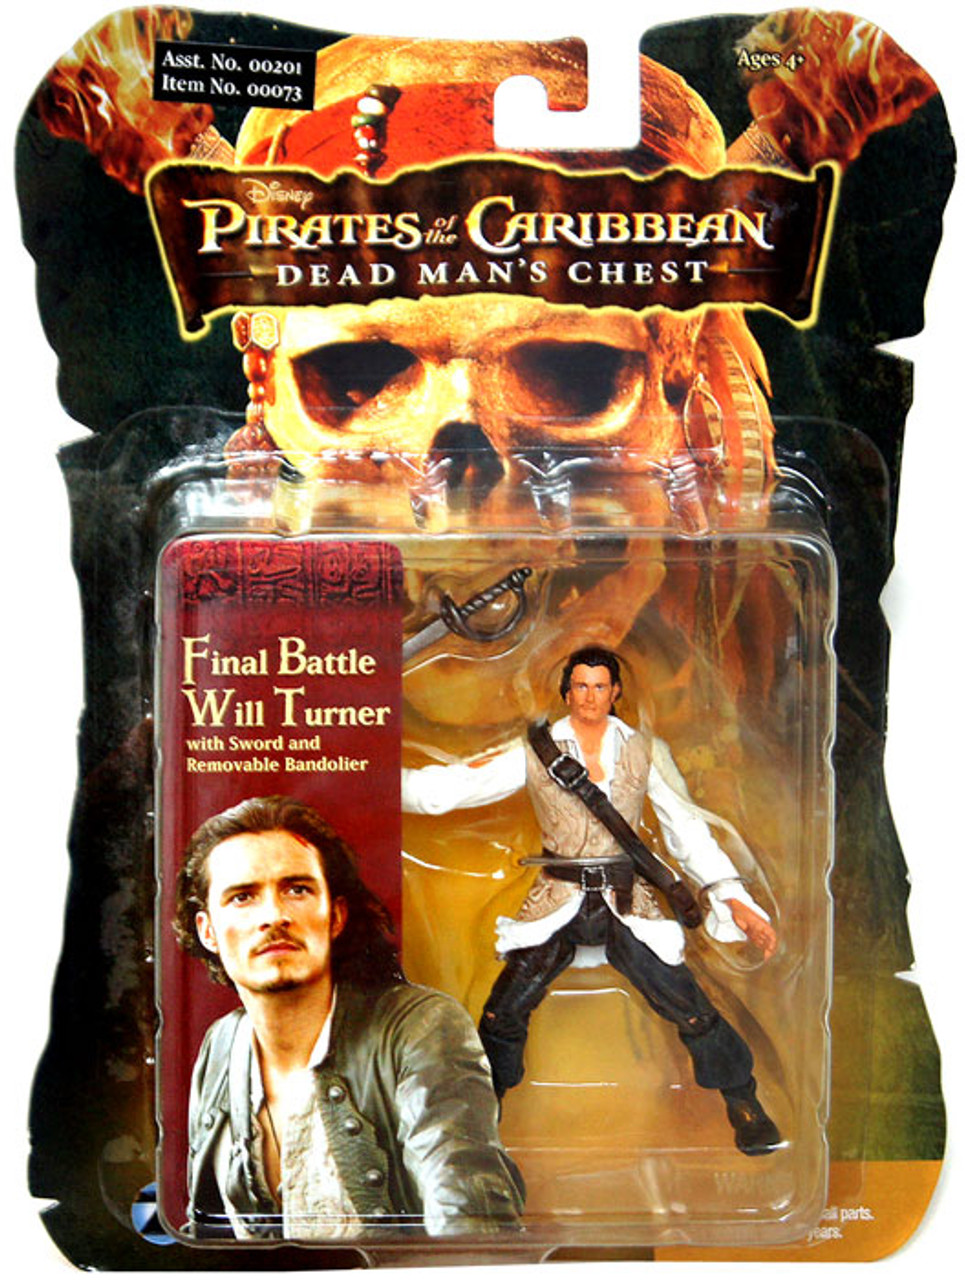 Pirates of the Caribbean Dead Man's Chest Will Turner Action Figure [Final Battle]